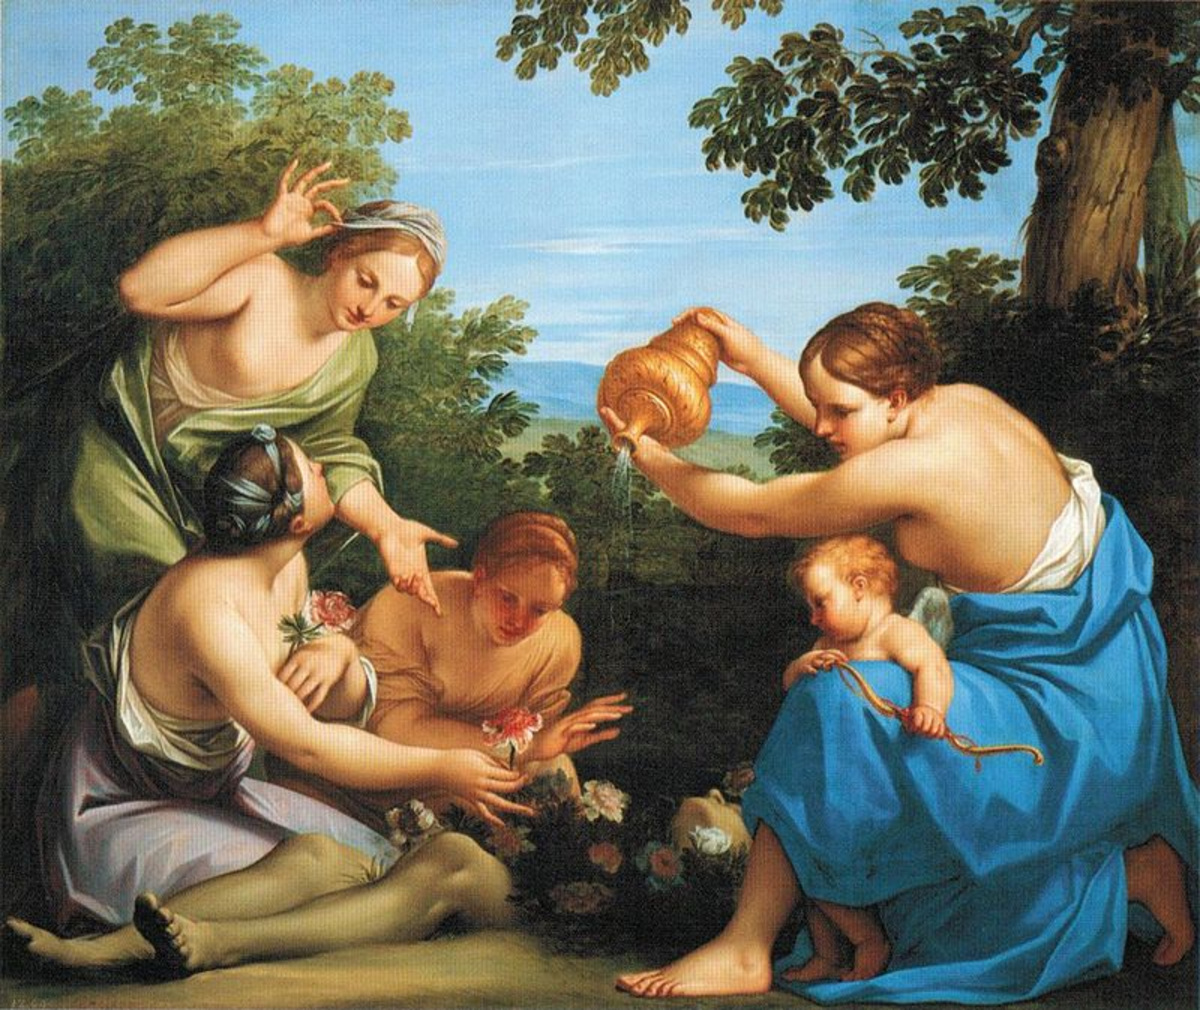 Aphrodite pouring nectar on Adonis